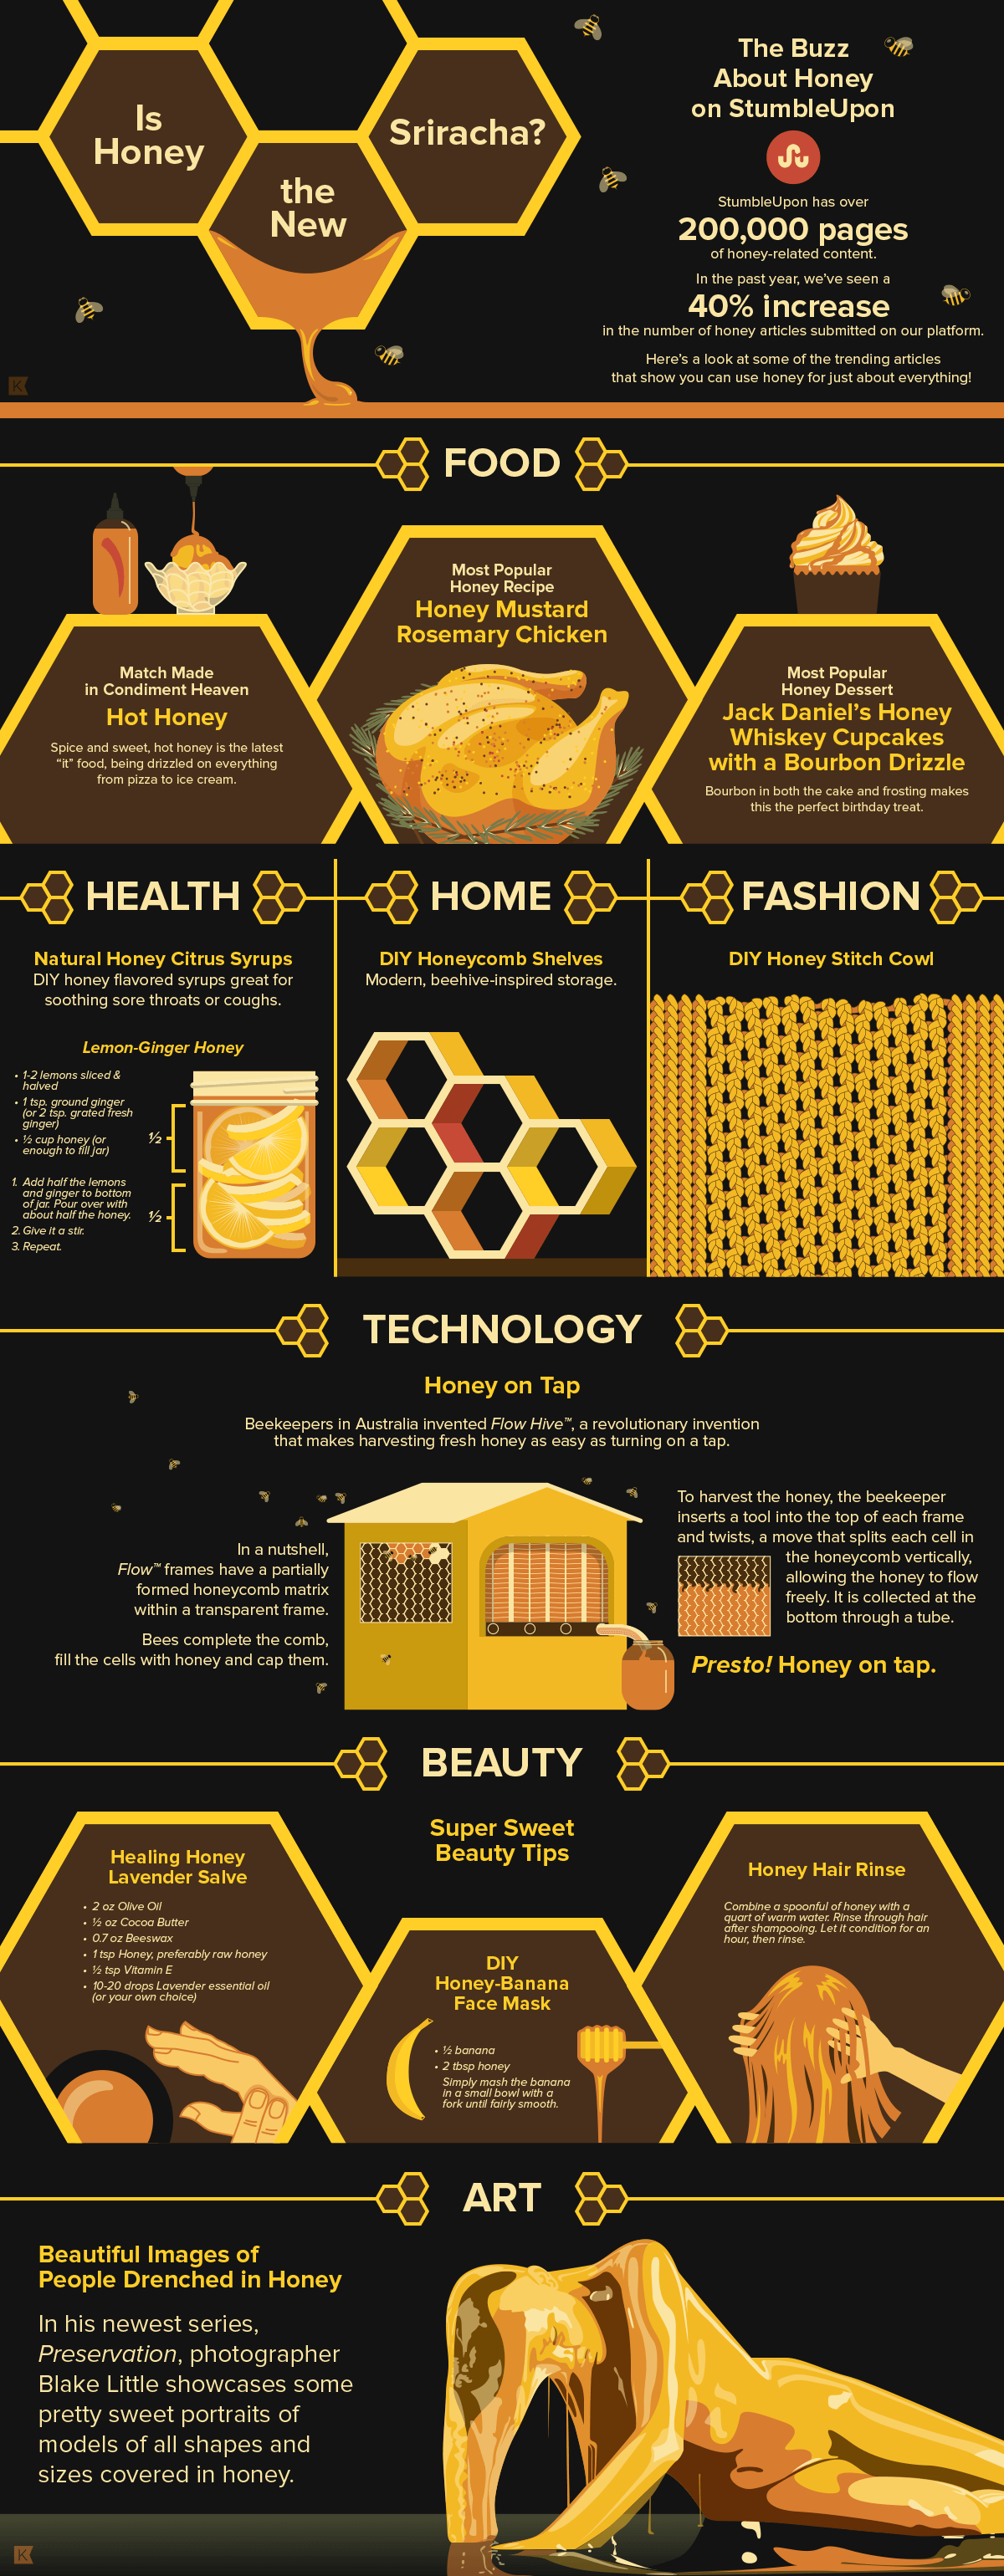 StumbleUpon Honey Infographic